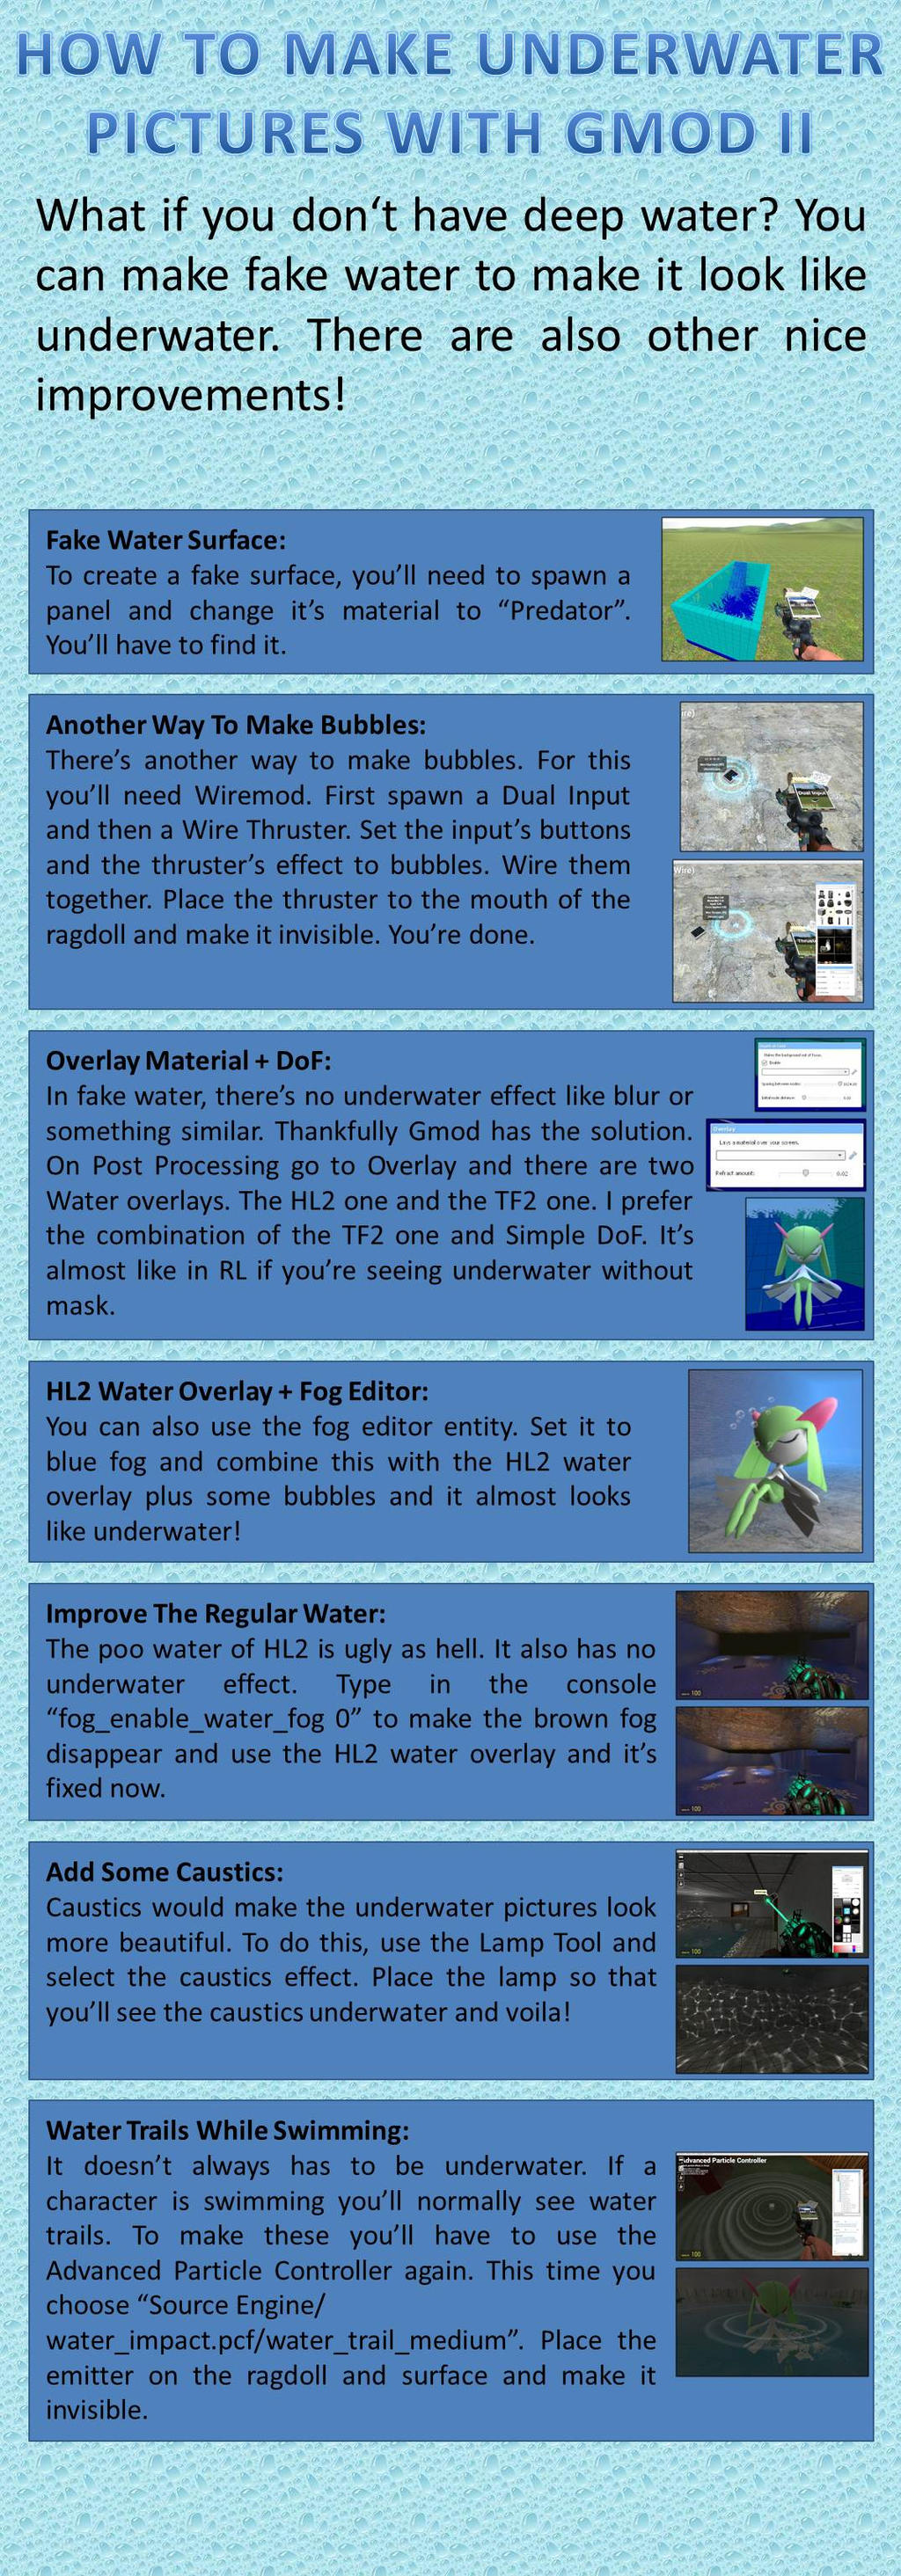 How to make underwater pictures with GMod II by AtomicLugia